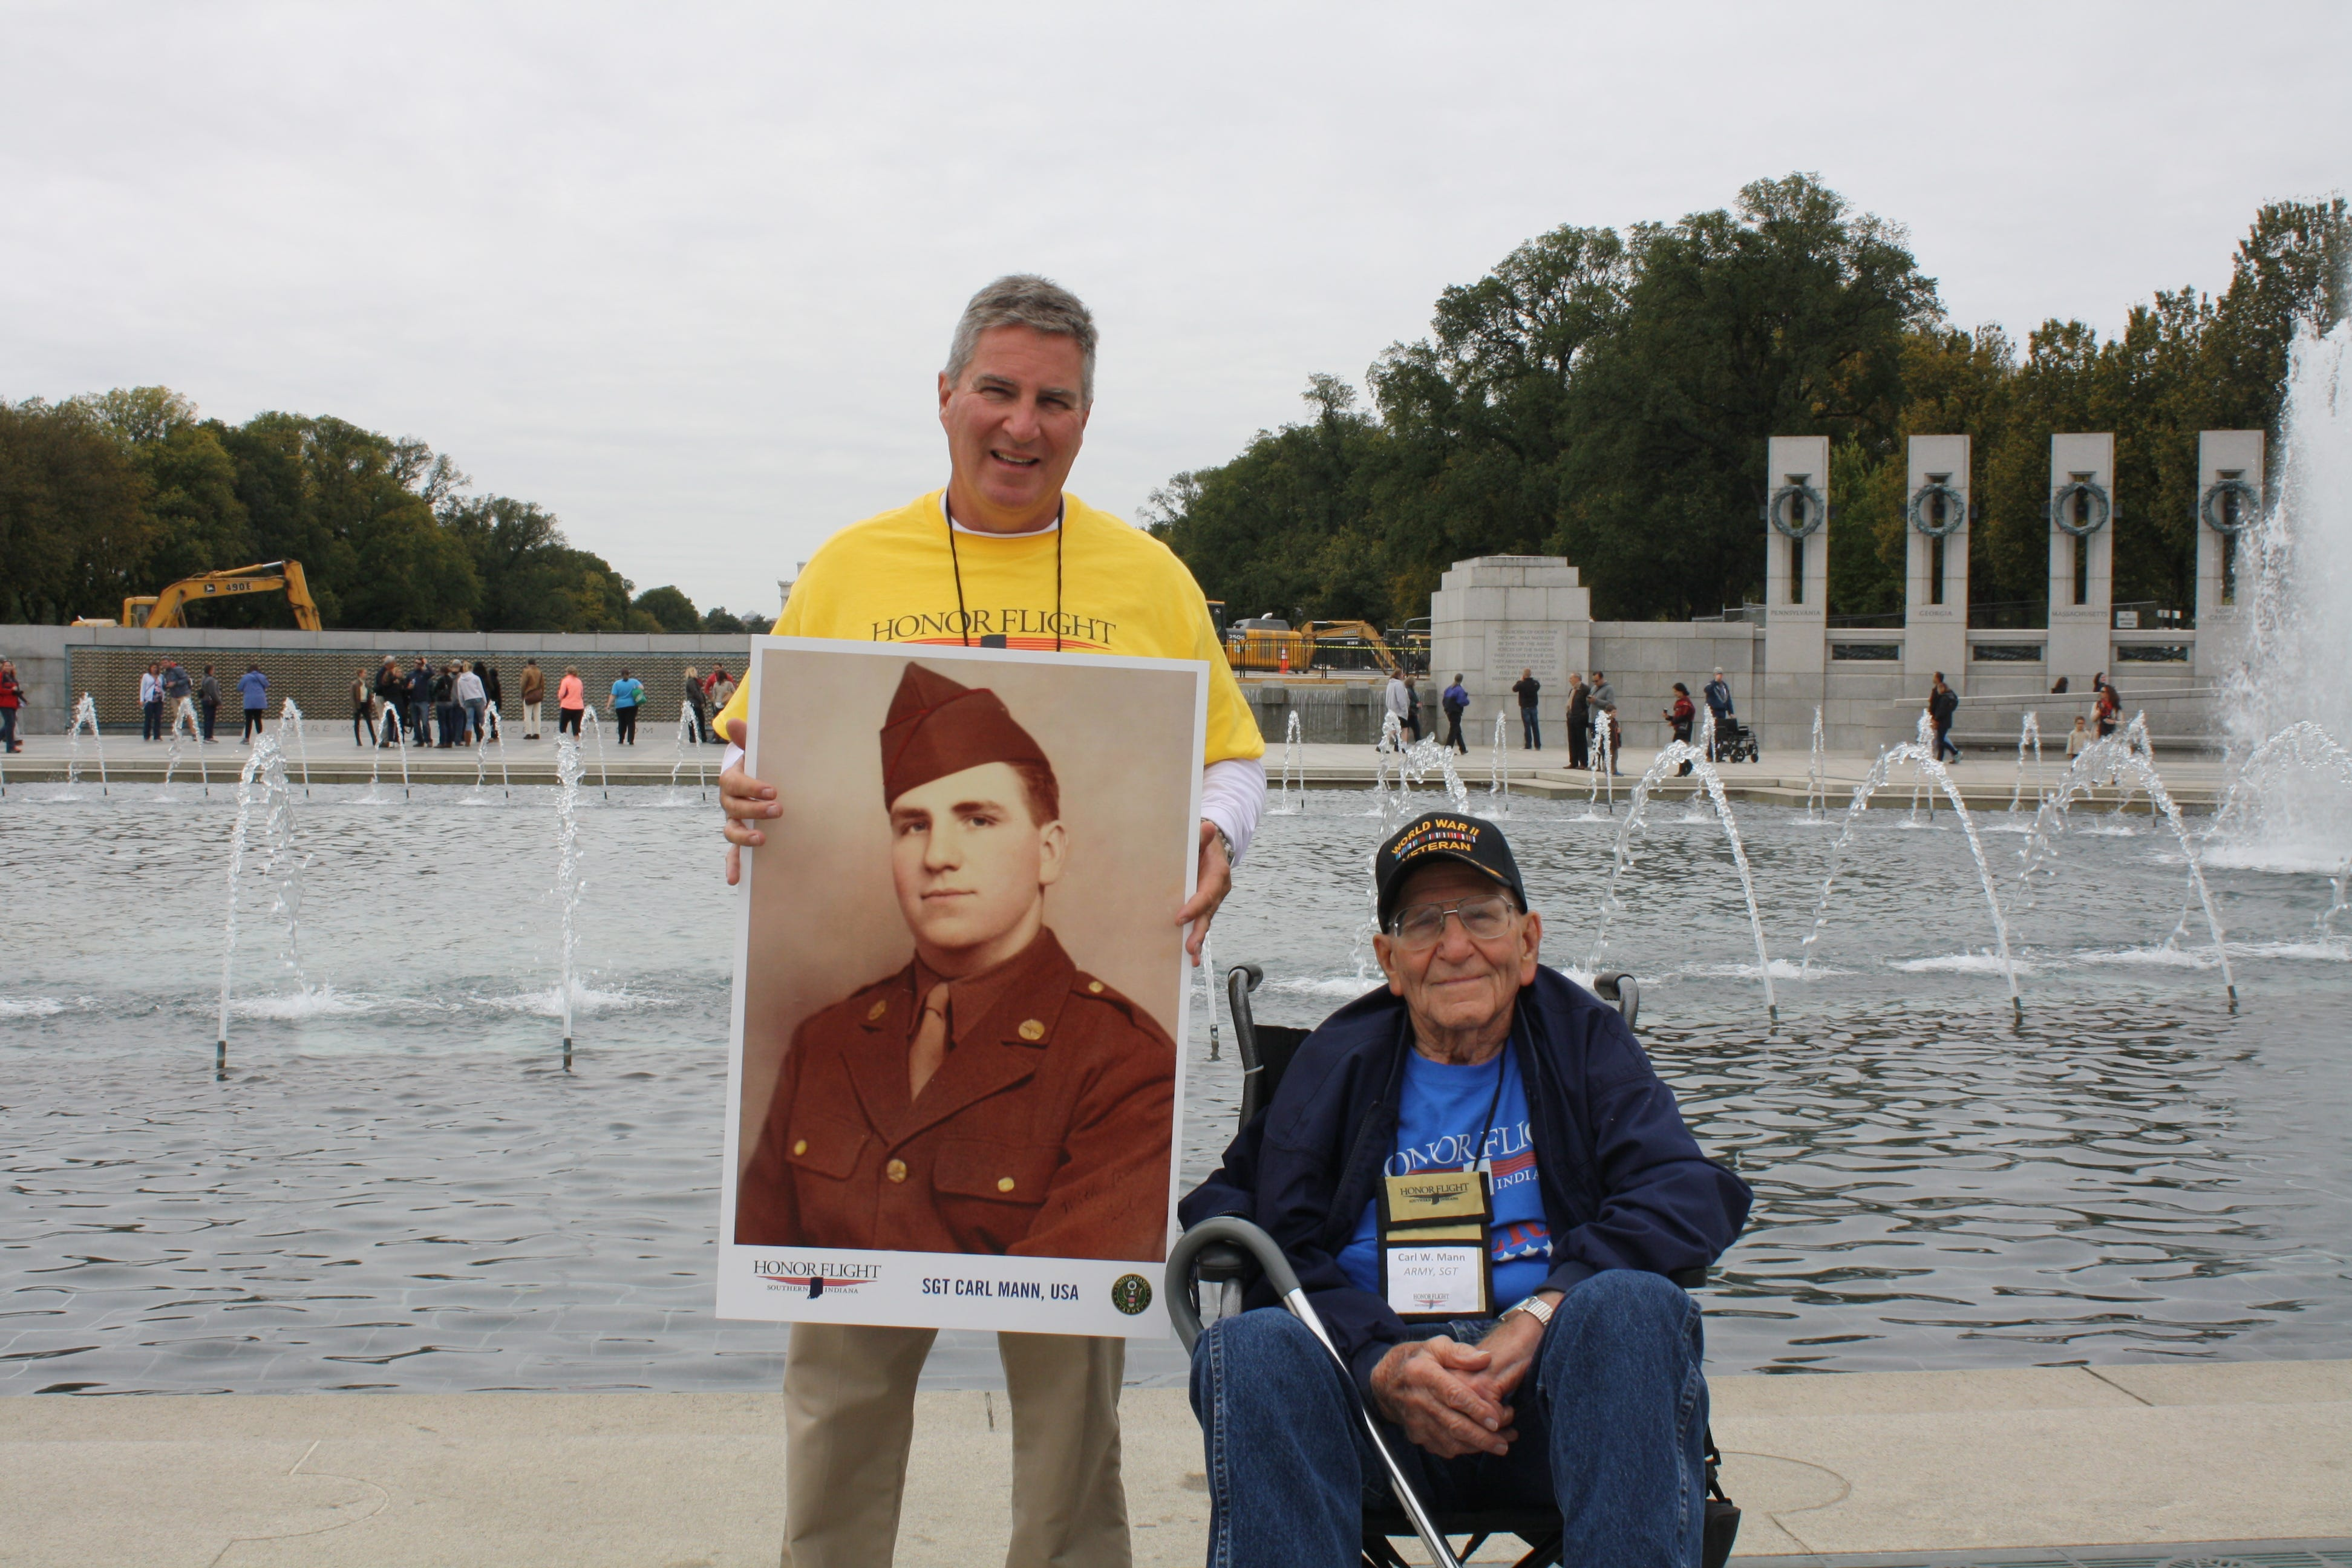 Miles Mann (left) and Carl Mann visited the WWII Memorial during his Honor Flight in 2015.